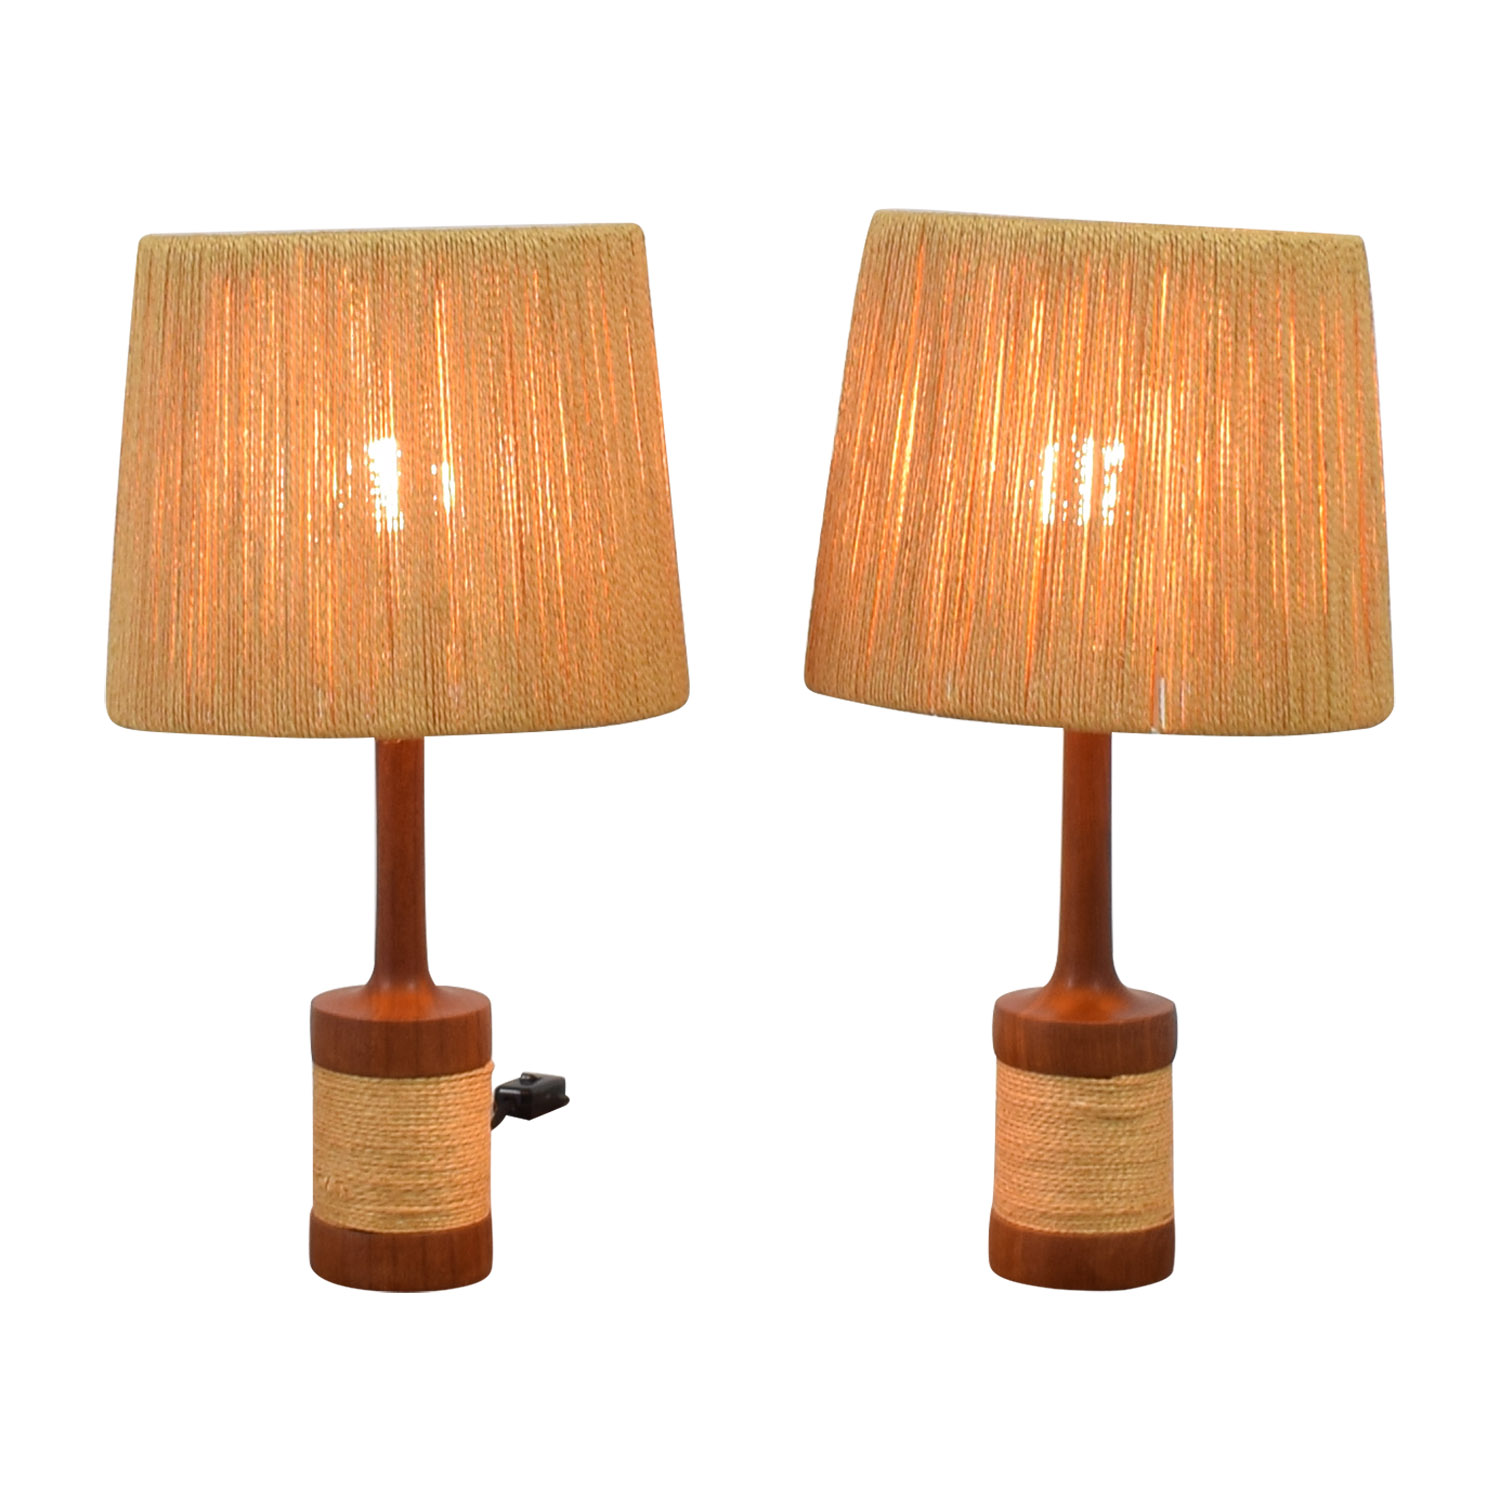 Sisal and Wood Table Lamps nj